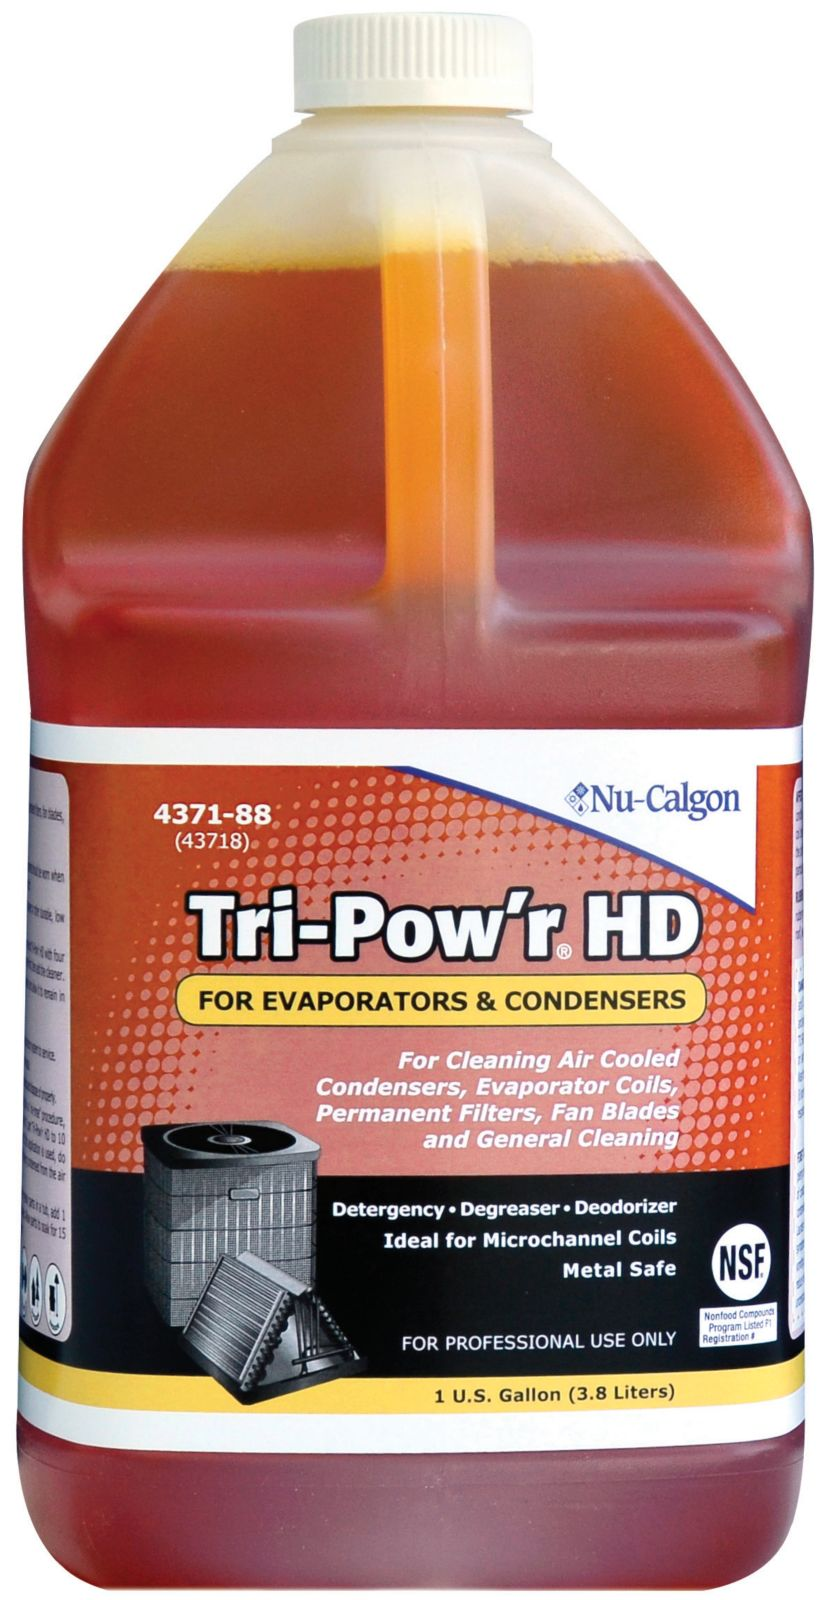 TRI-POW'R HD COIL CLEANER 1 GAL